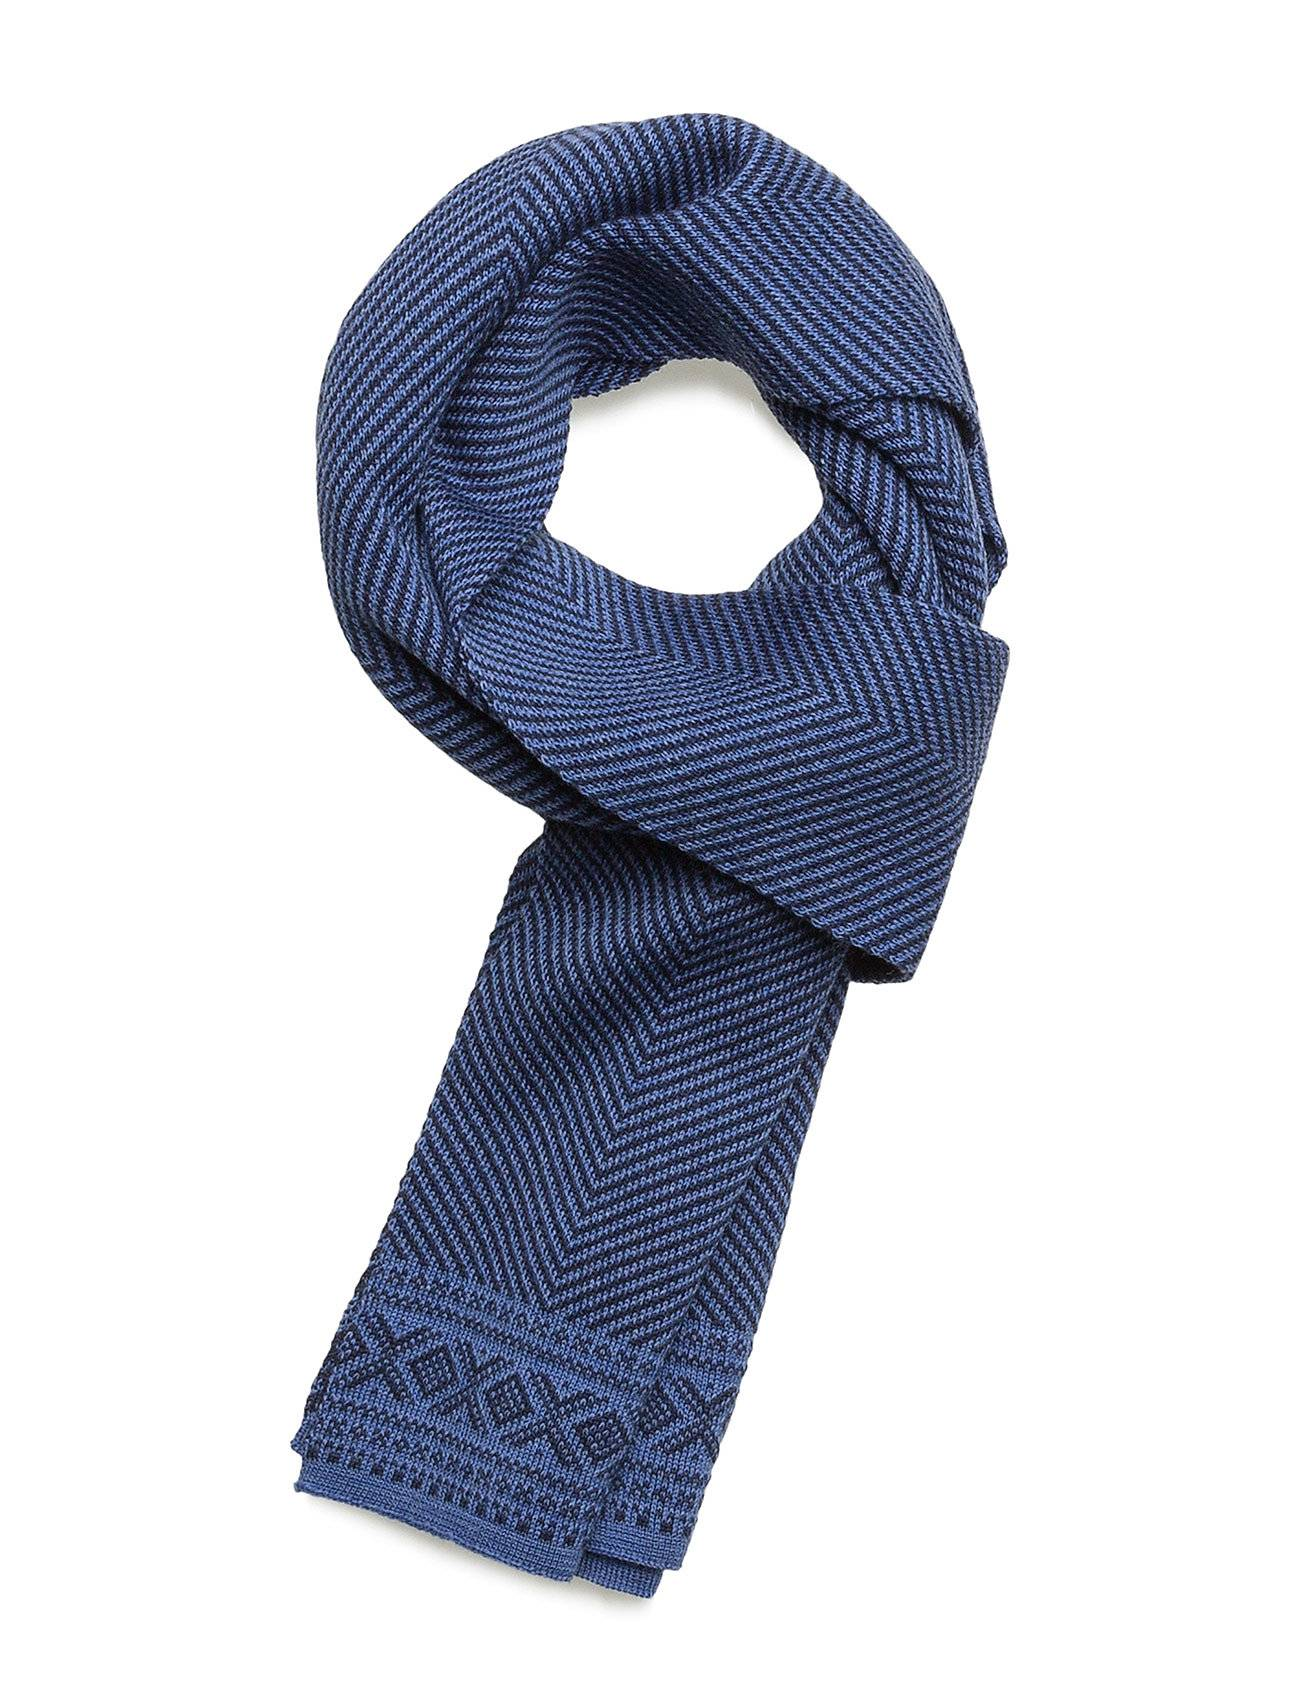 Dale of Norway Harald Scarf